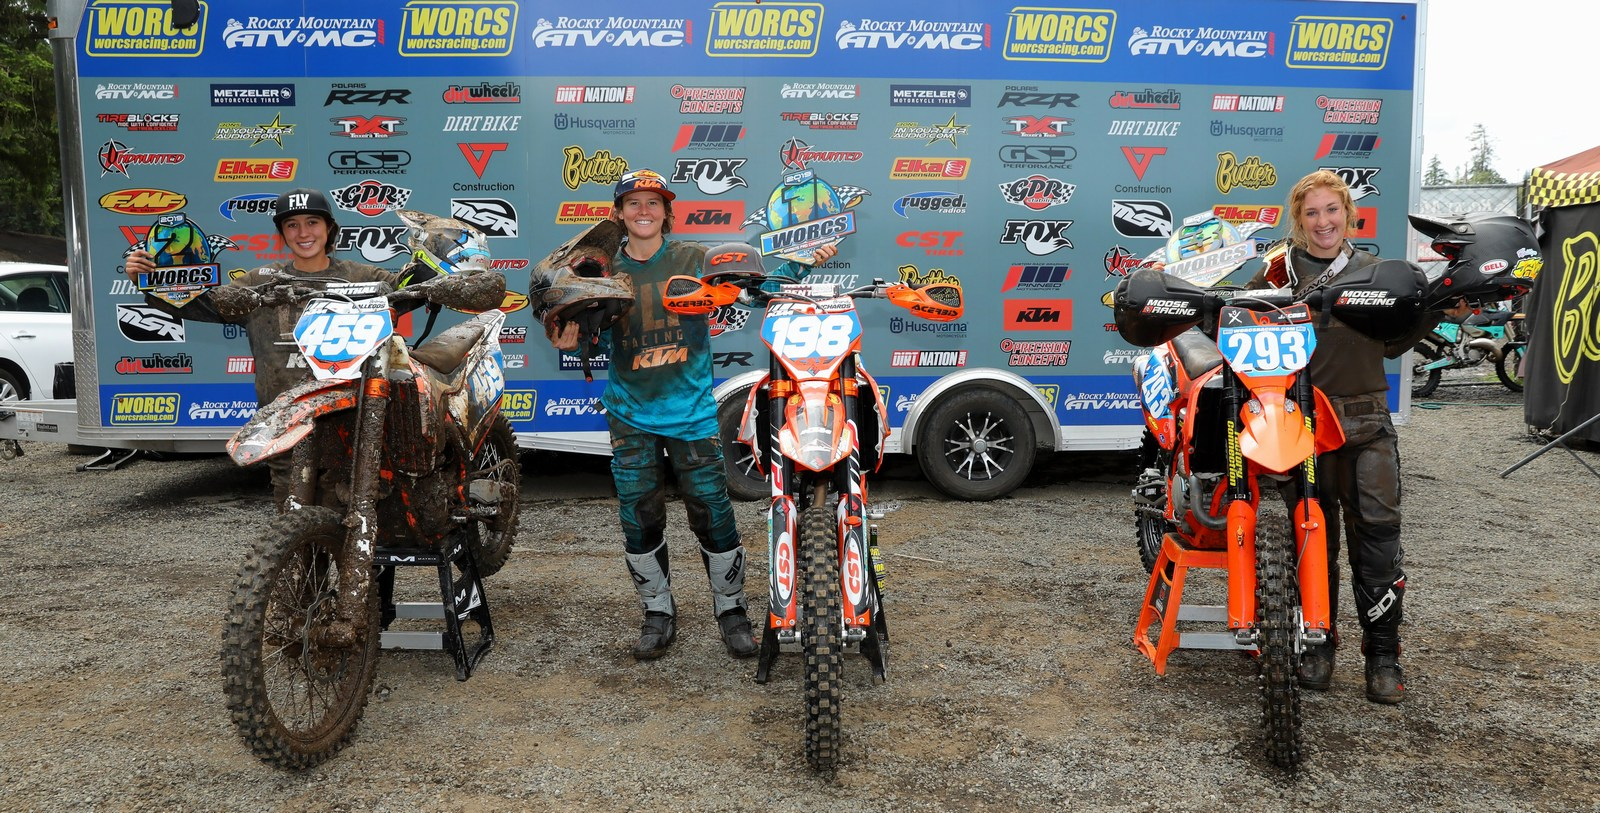 2019-08-podium-women-pro-bike-worcs-racing